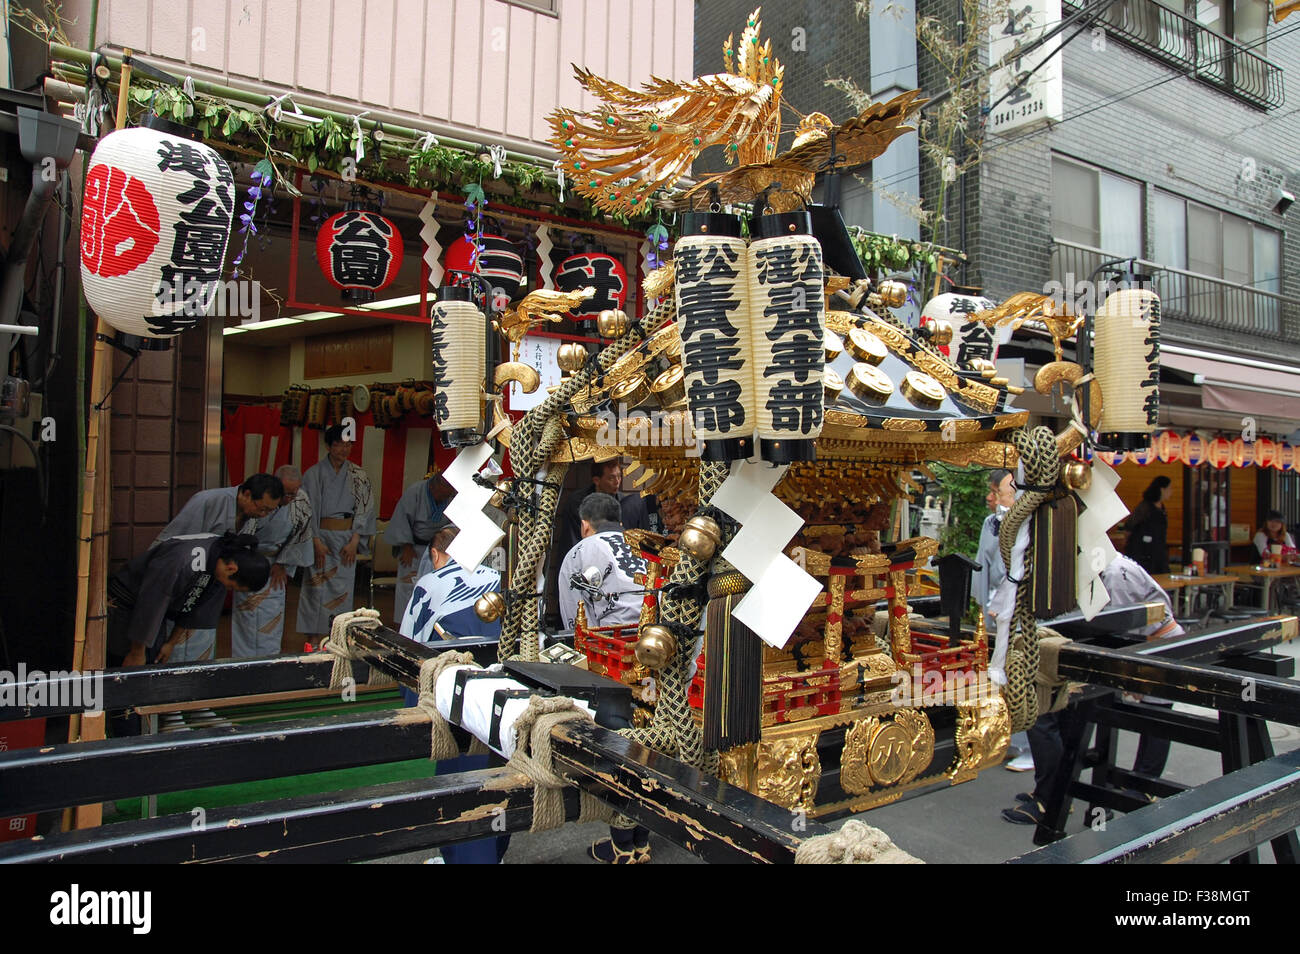 Mikoshi placed during the Sanja Matsuri Festival in the Asakusa Ward of Tokyo, Japan. - Stock Image